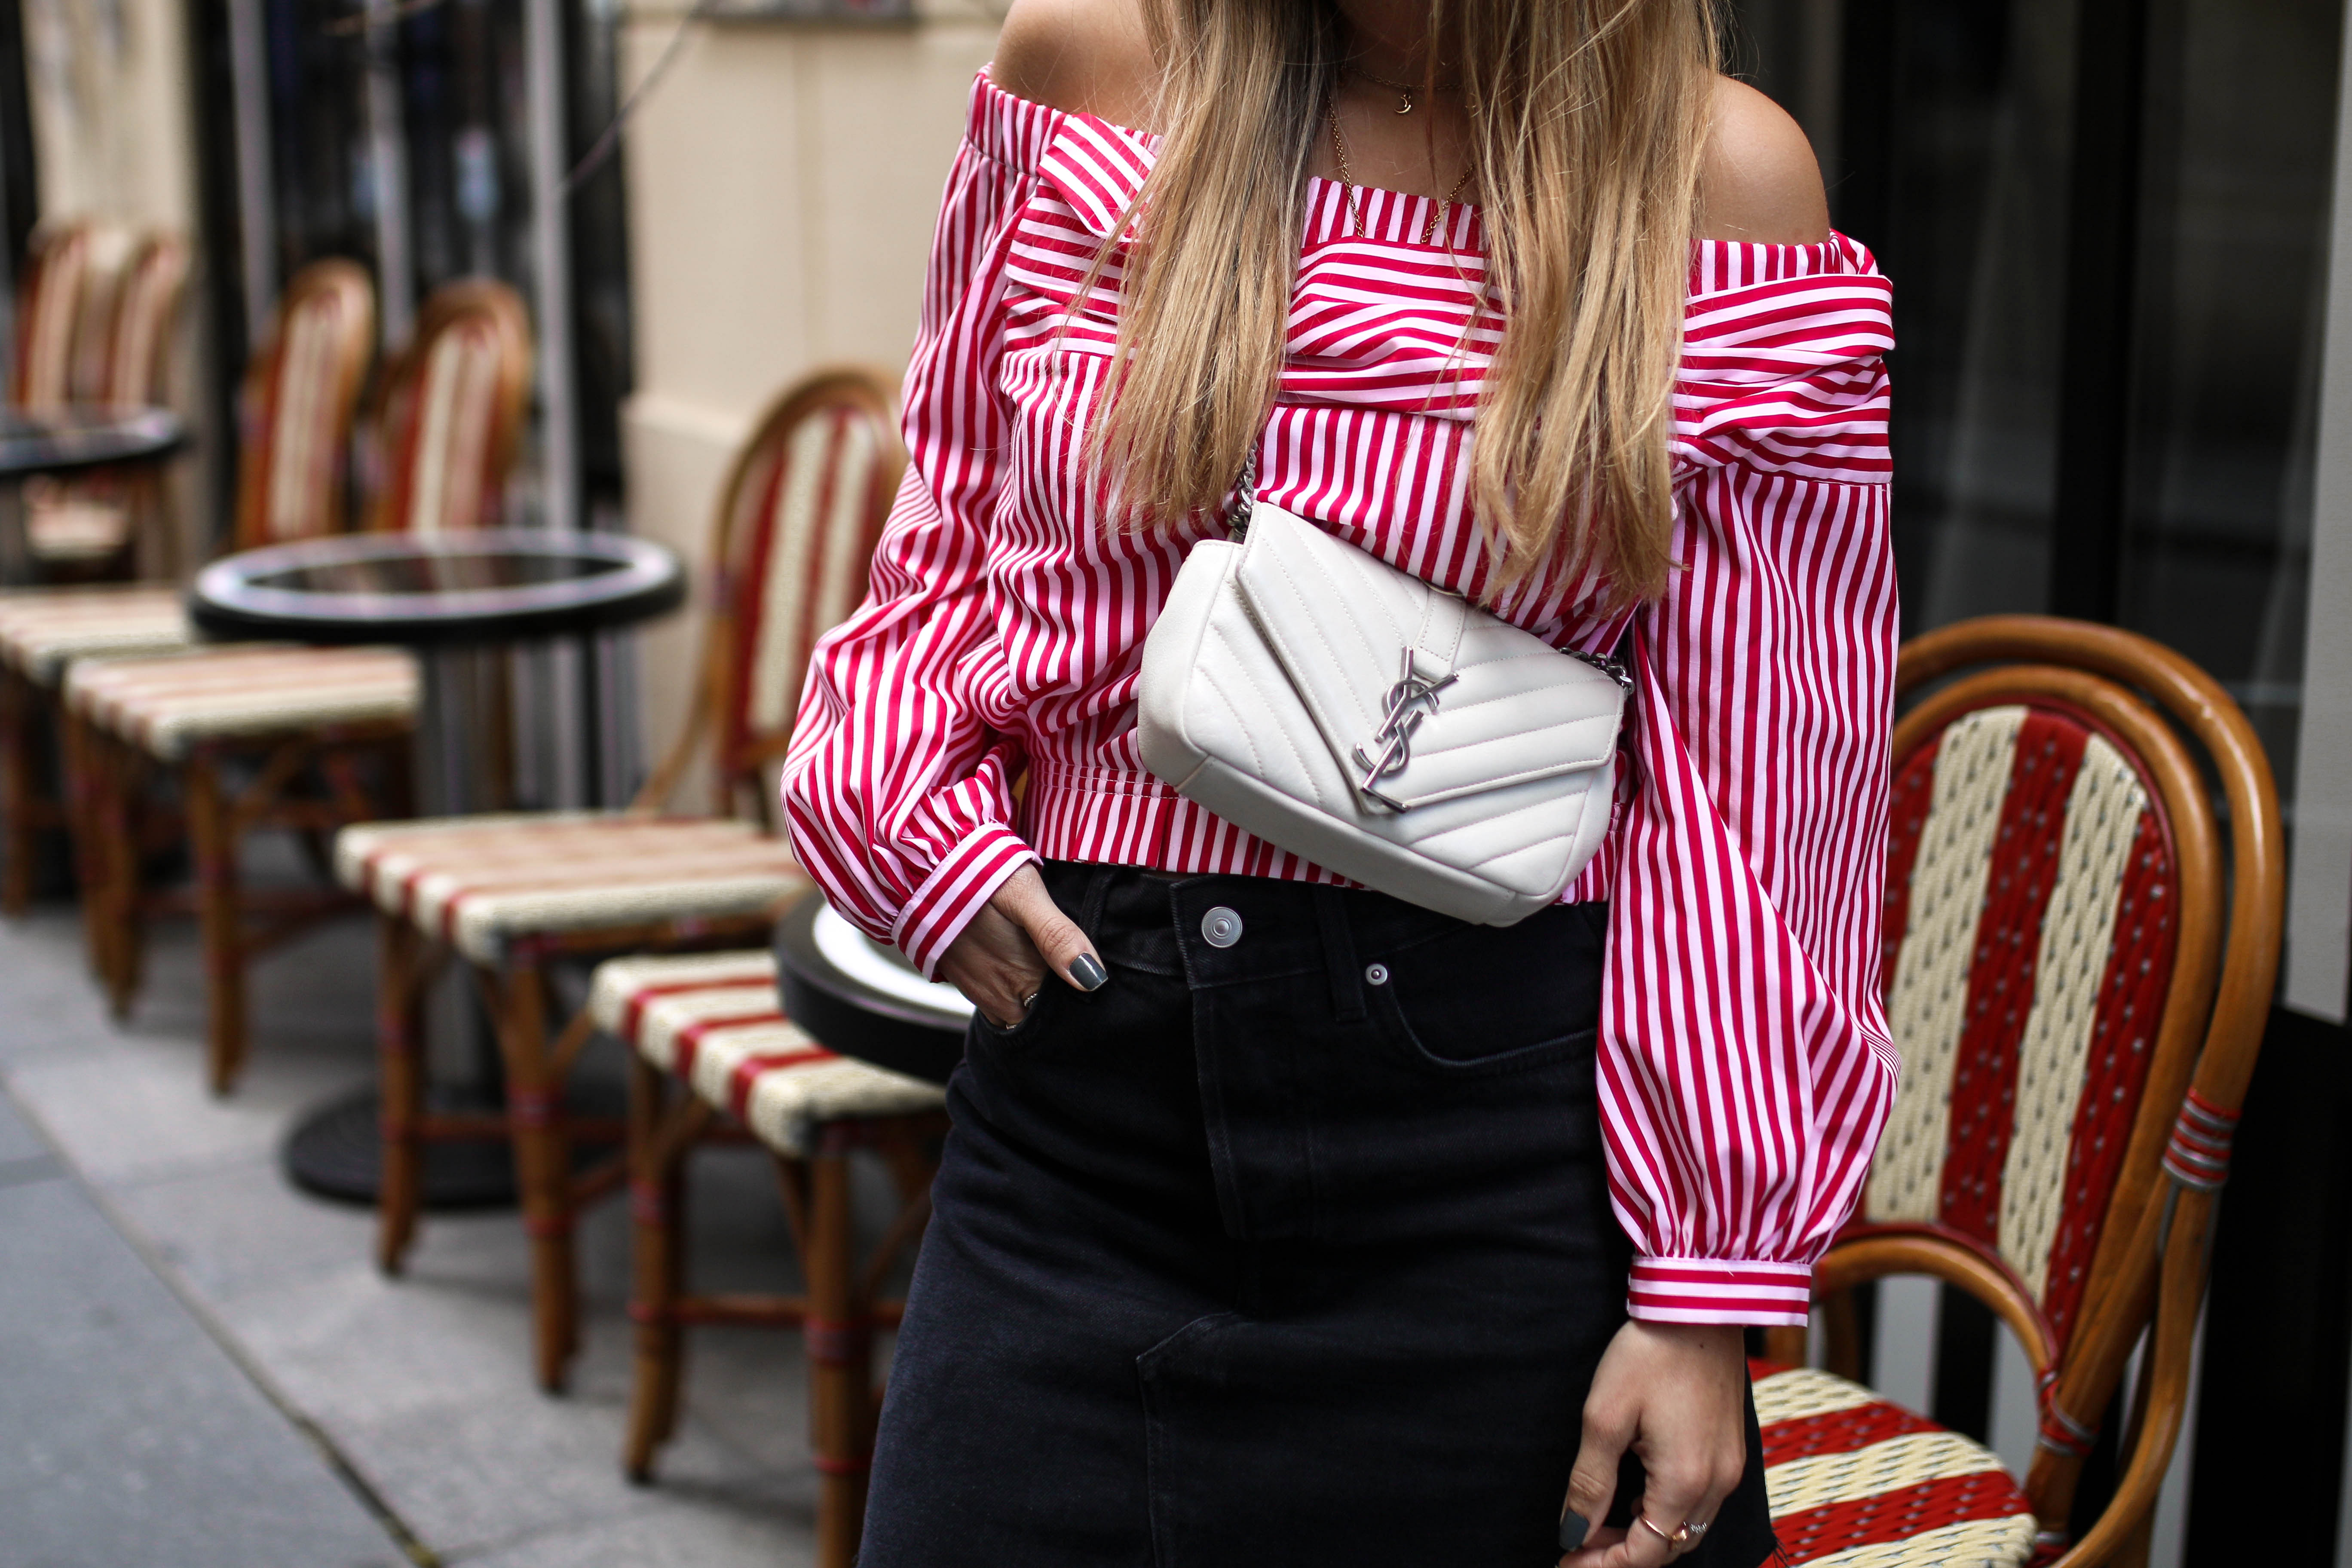 paris streetstyle pinterest inspiration outfit post fashion